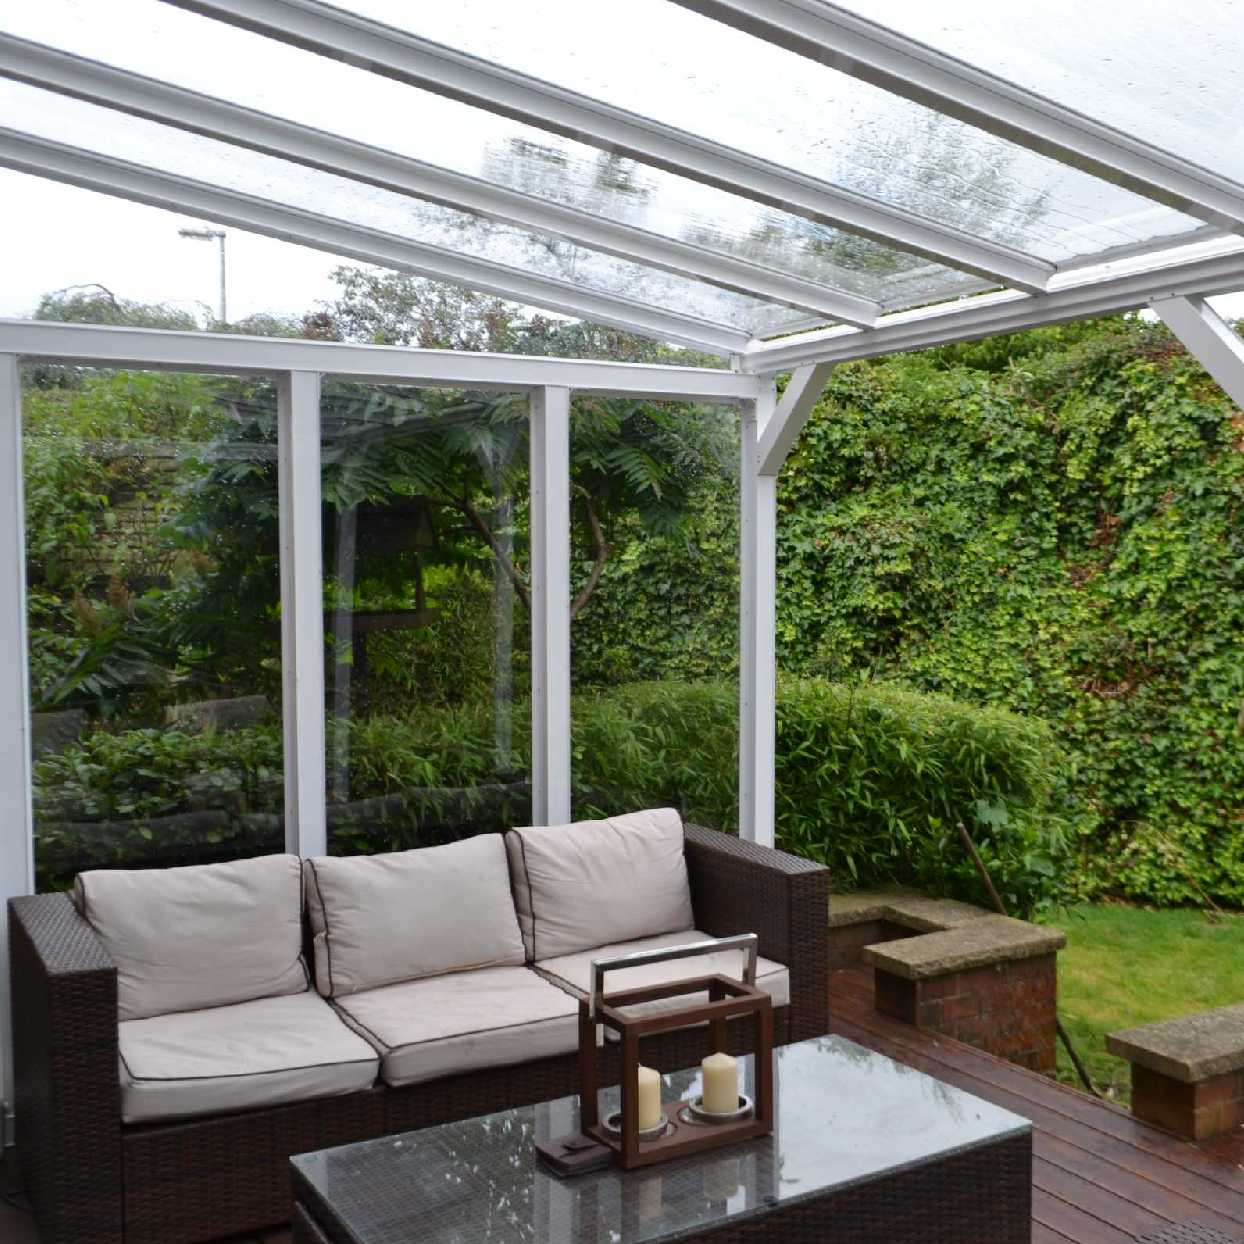 Omega Smart White Lean-To Canopy with 6mm Glass Clear Plate Polycarbonate Glazing - 8.4m (W) x 4.0m (P), (4) Supporting Posts